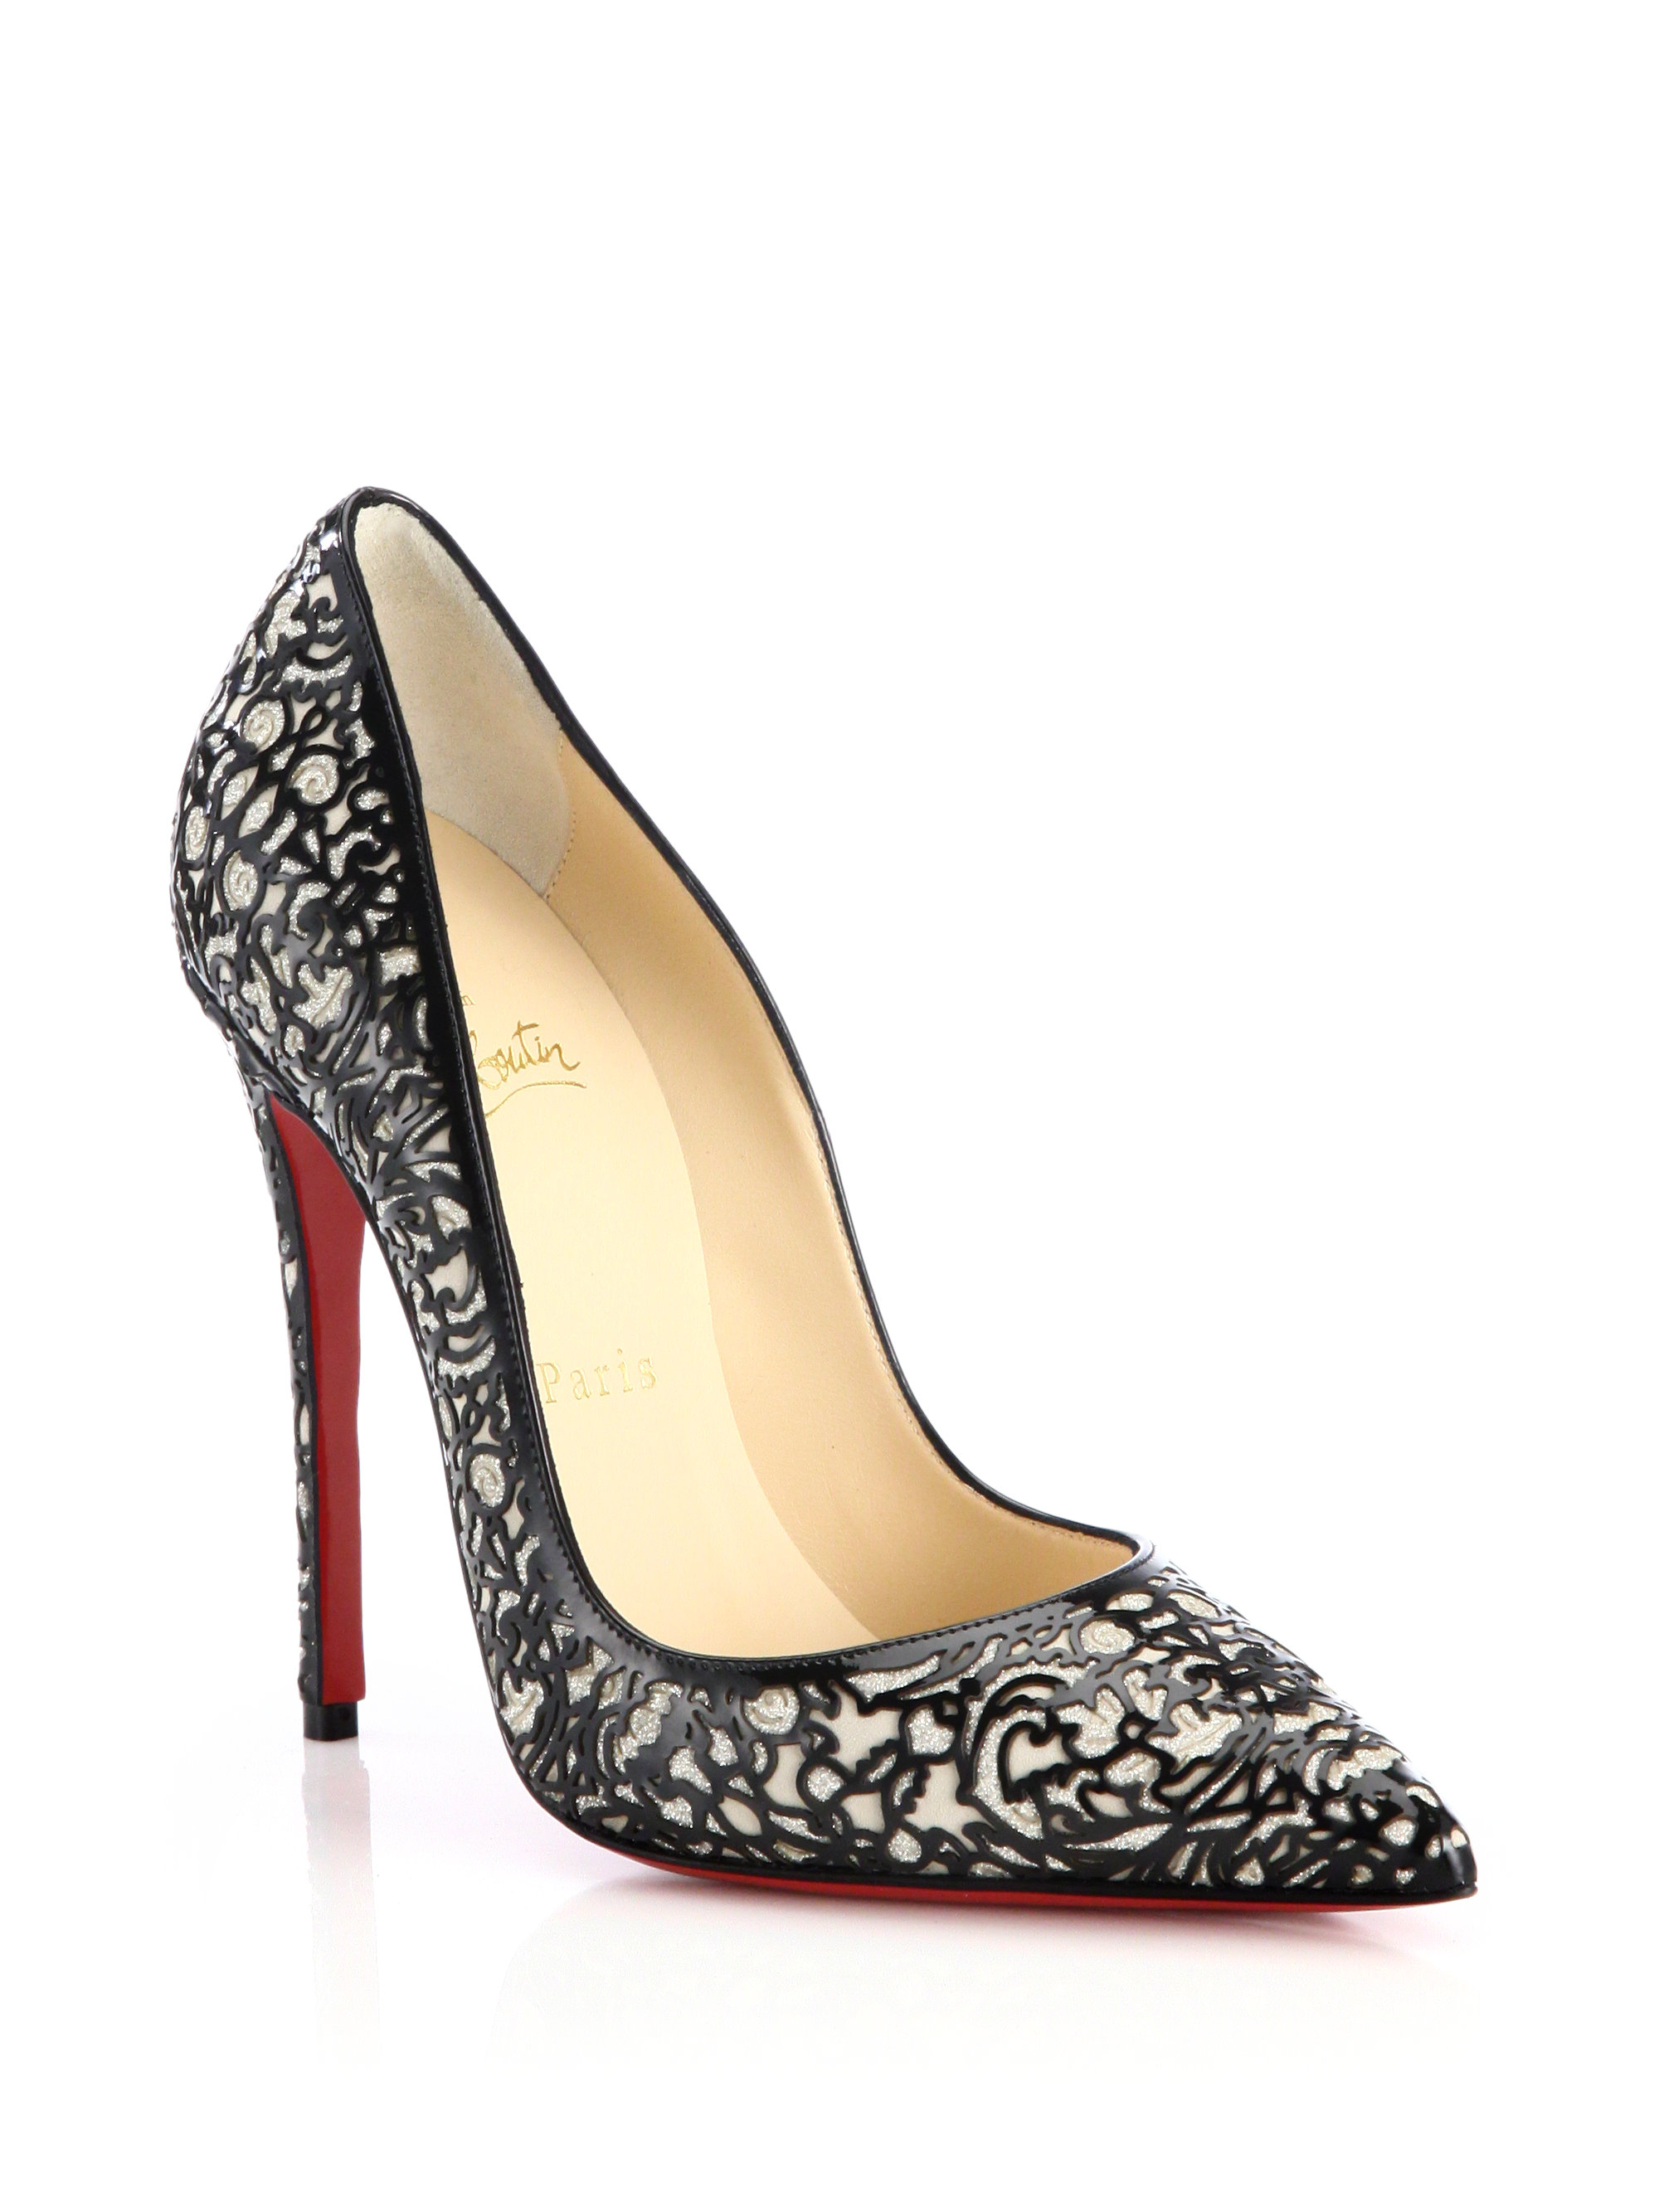 cheap louboutin shoes replica - christian louboutin platform peep-toe pumps Black patent leather ...